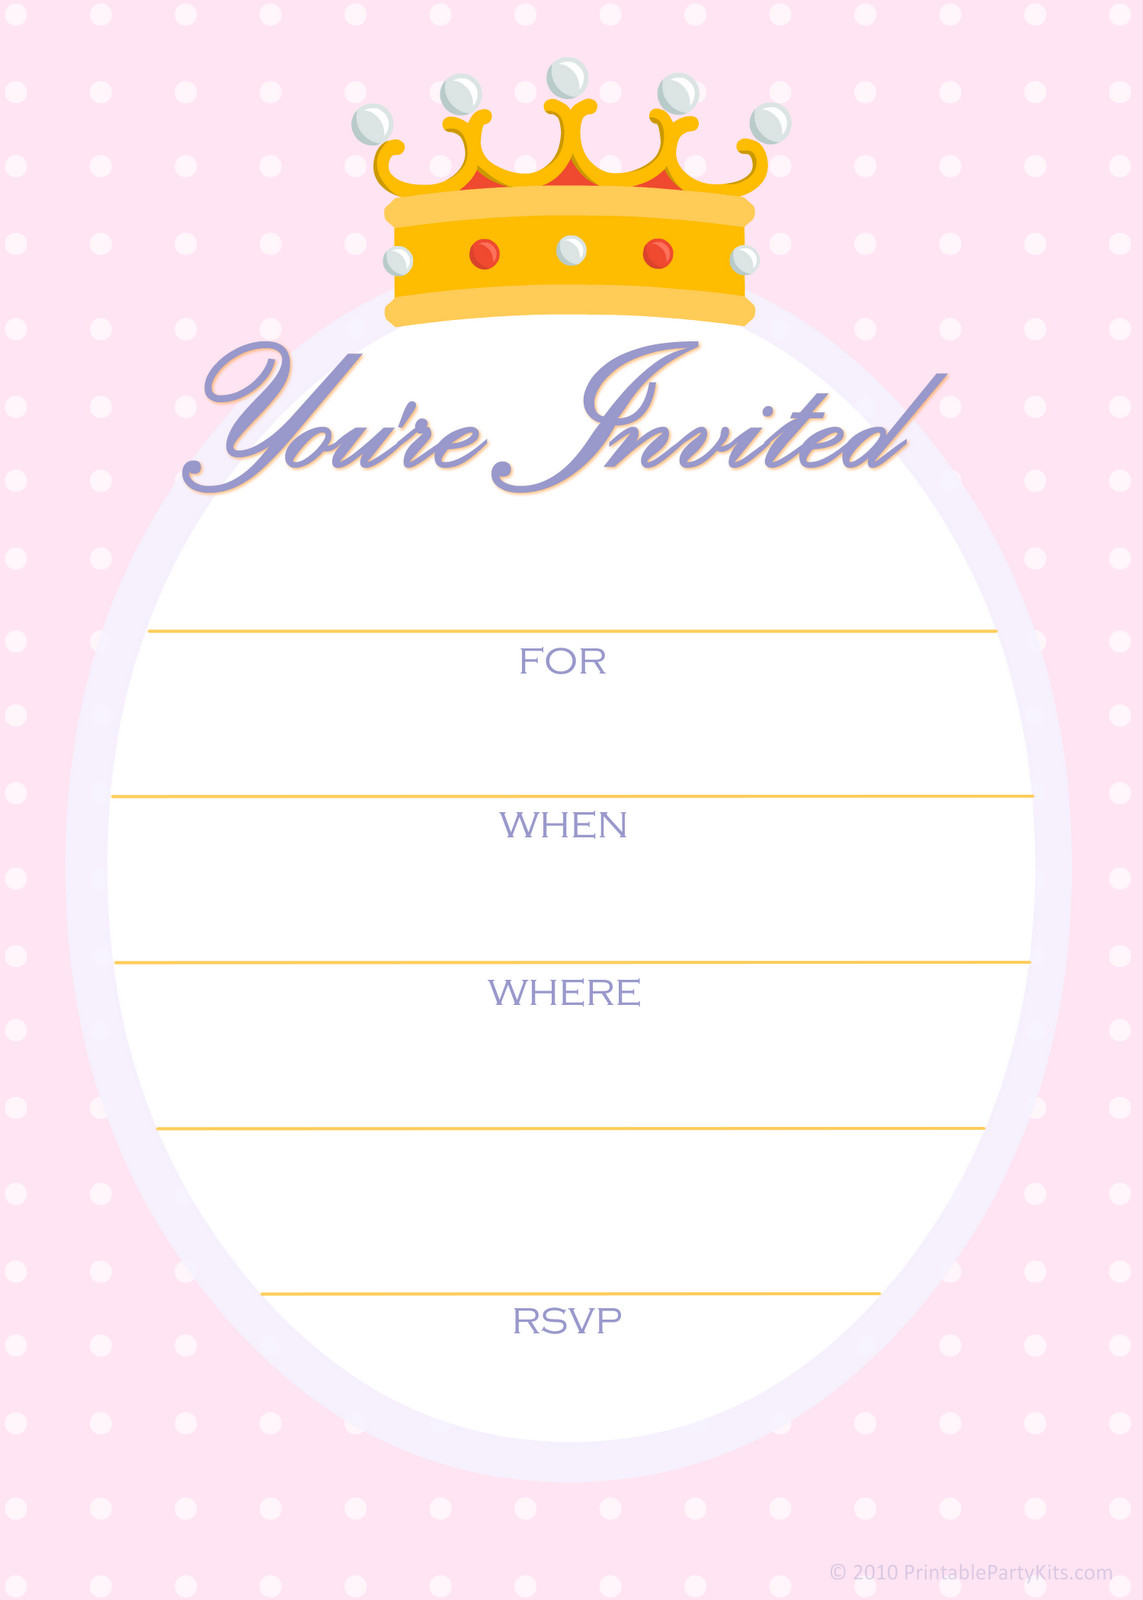 Free Templates For Birthday Invitations  Free Printable Party Invitations April 2010